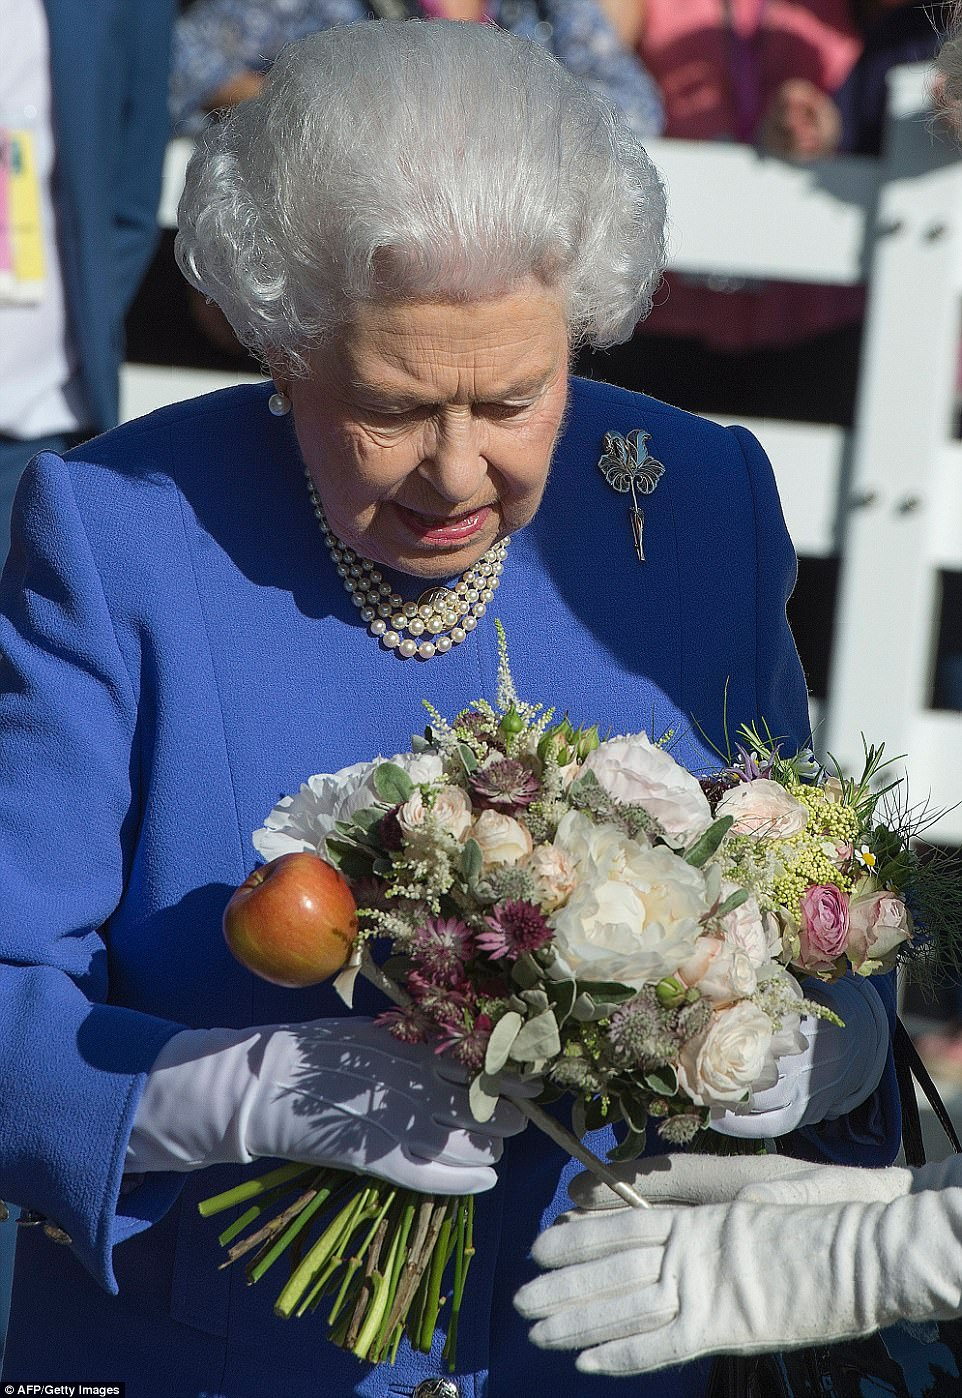 The monarch, who donned white gloves, was presenting with a beautiful bouquet of flowers during her tour of the grounds